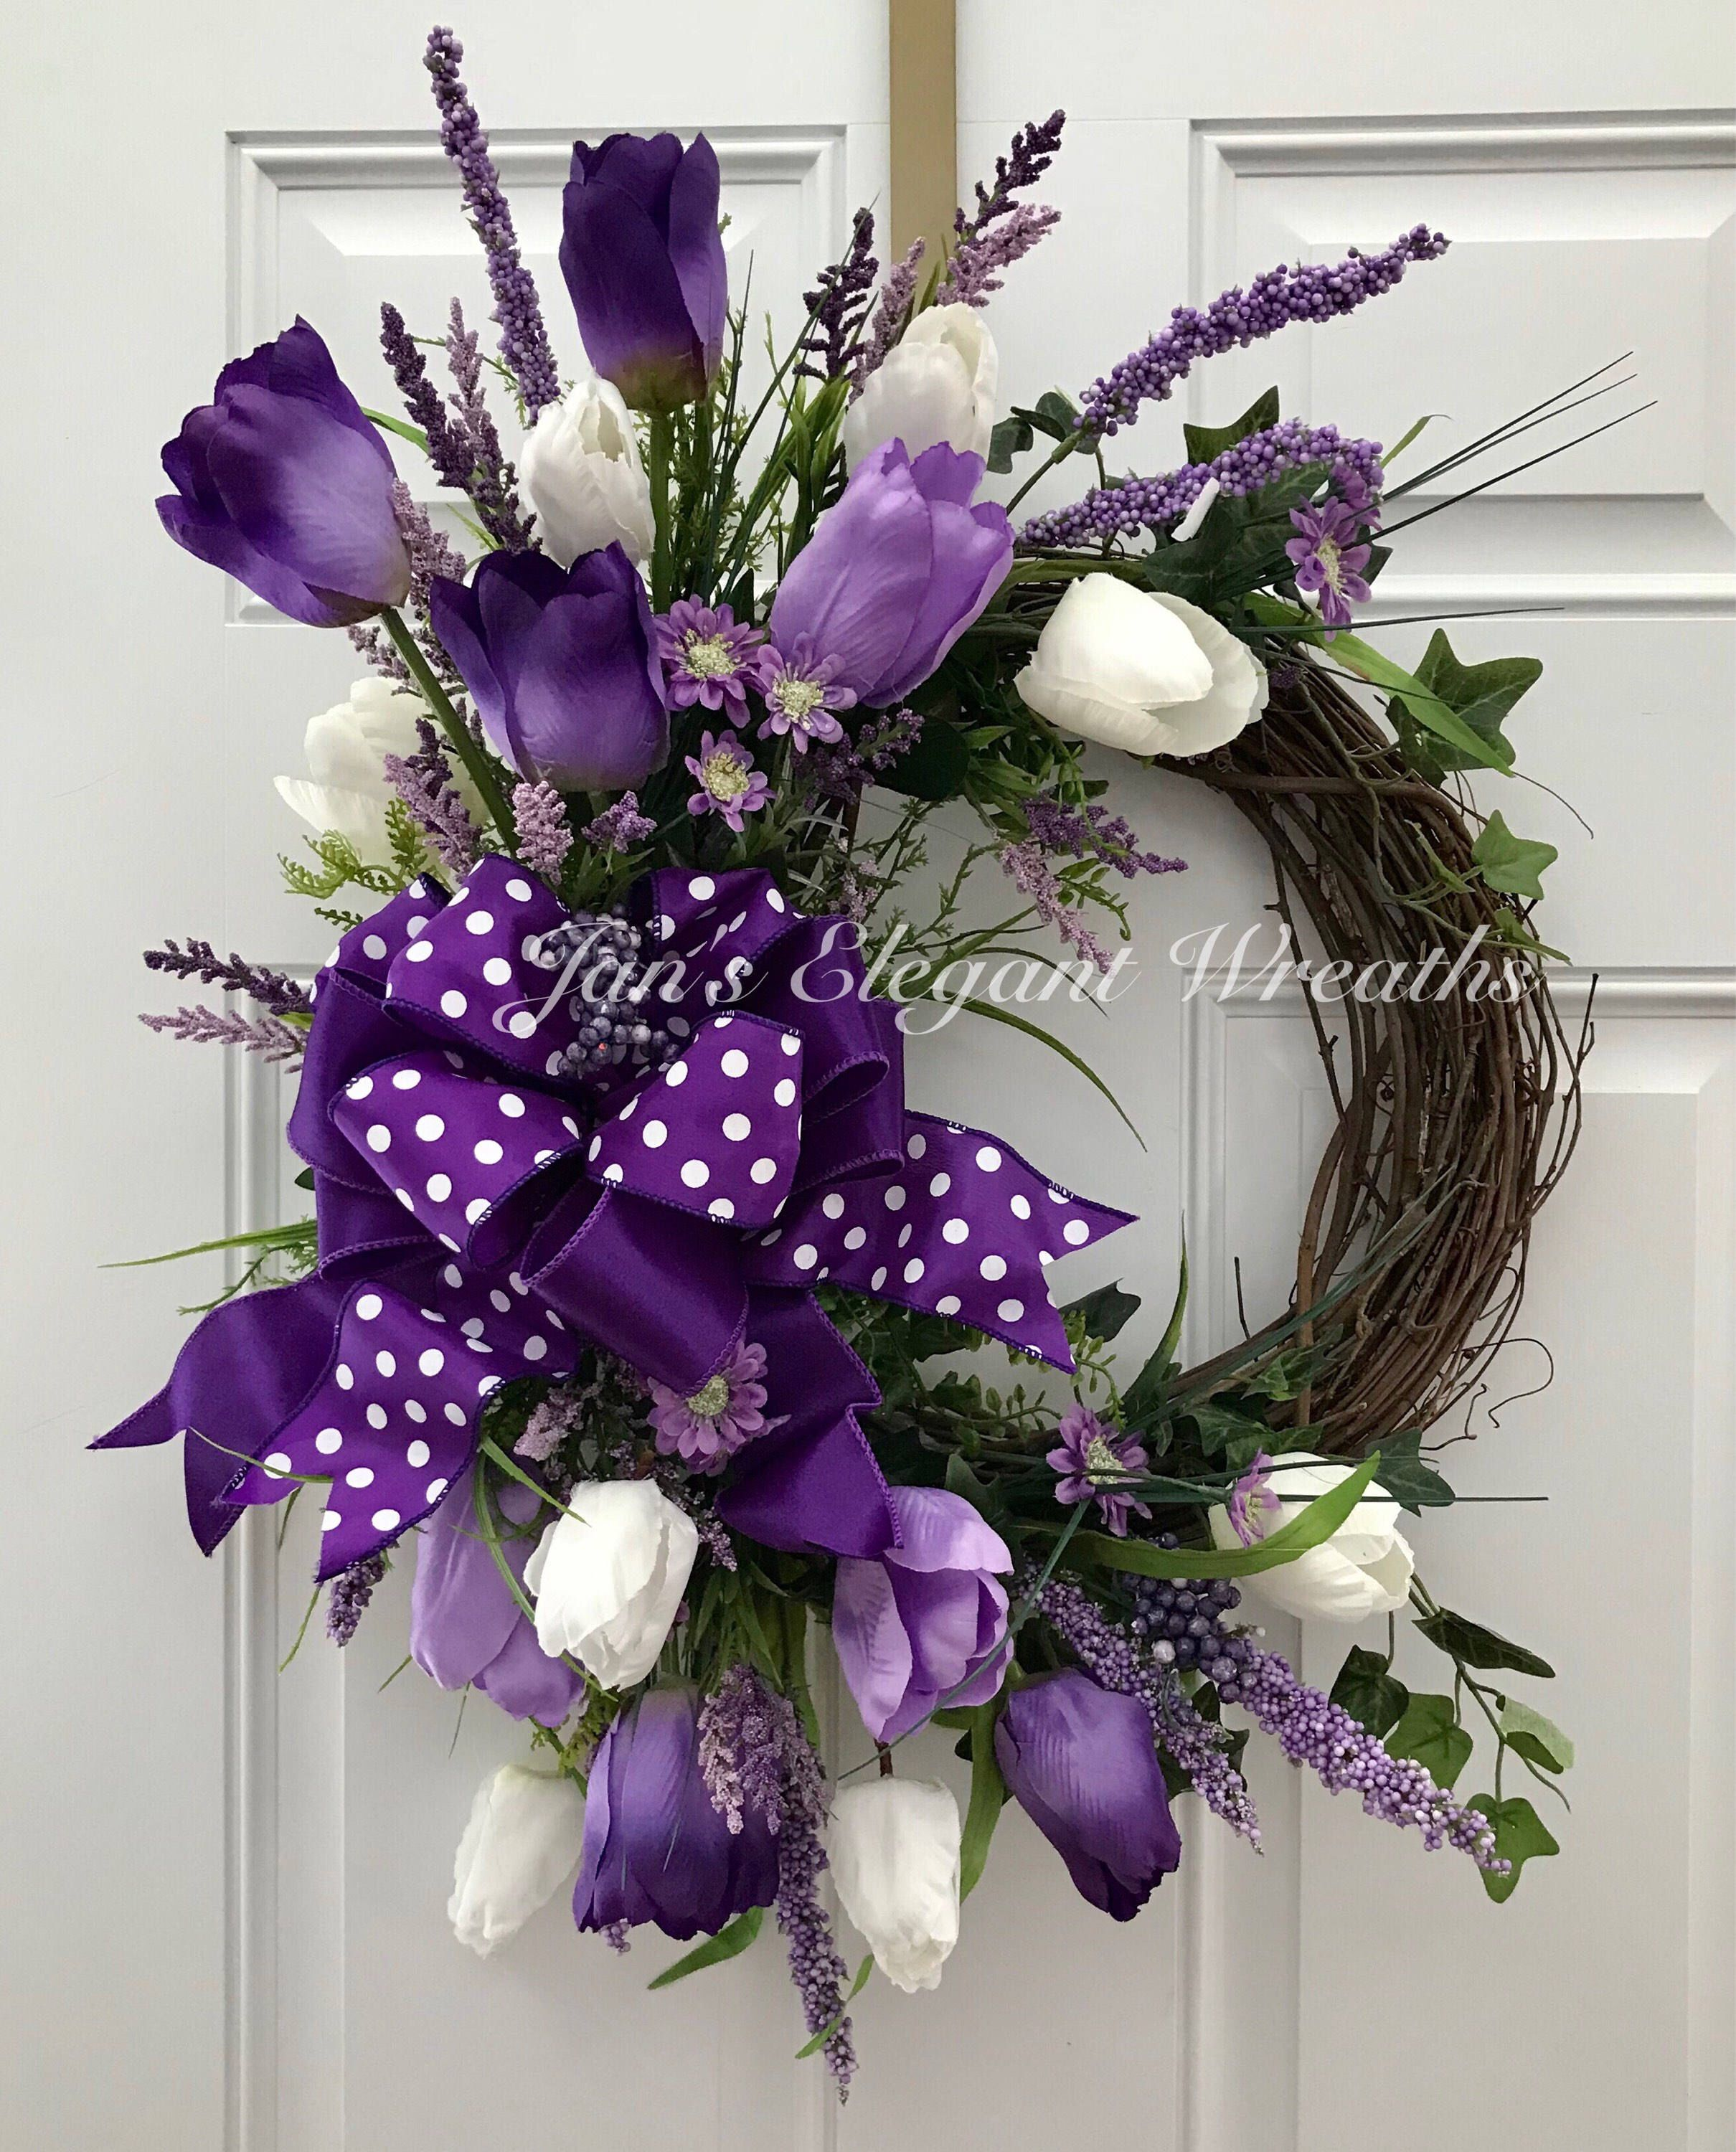 Spring Wreath. Purple Tulip Wreath. A personal favorite from my Etsy shop https://www.etsy.com/listing/590991129/spring-wreath-spring-tulip-wreath-purple